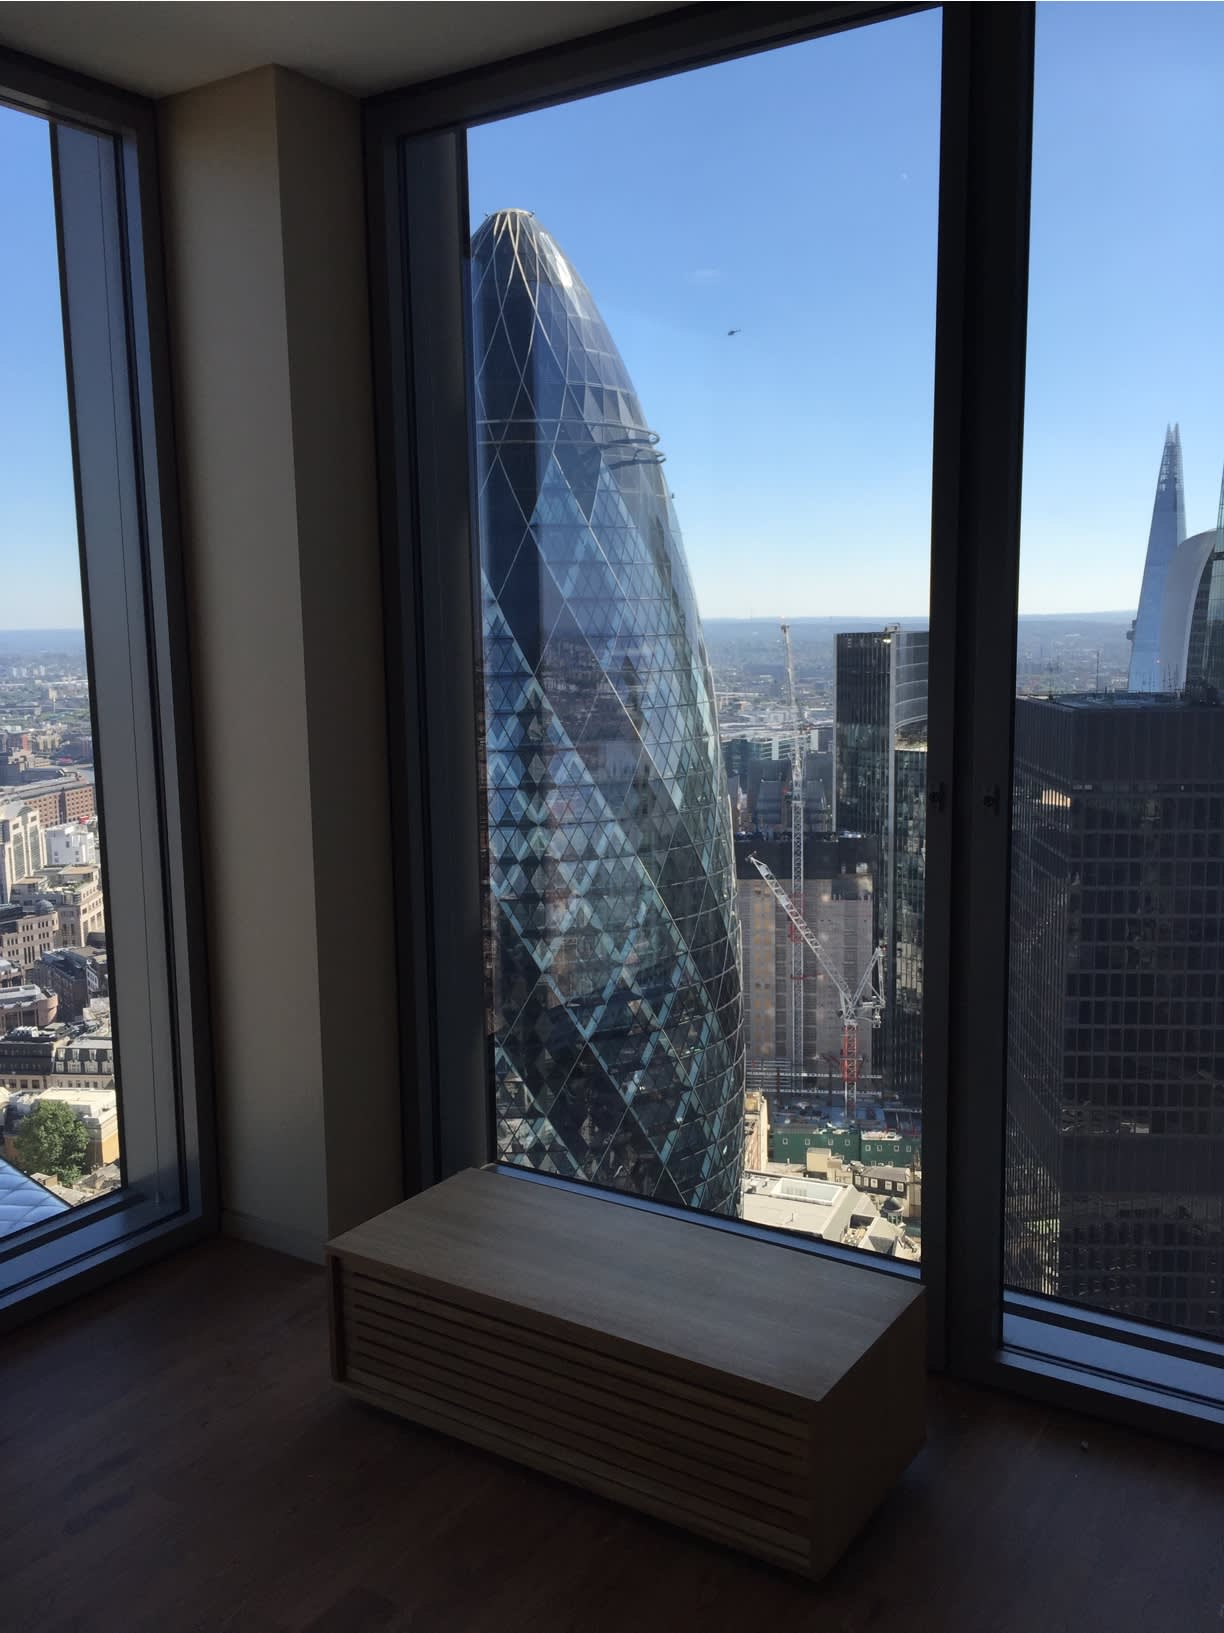 Photo of Salesforce office with view of city scape